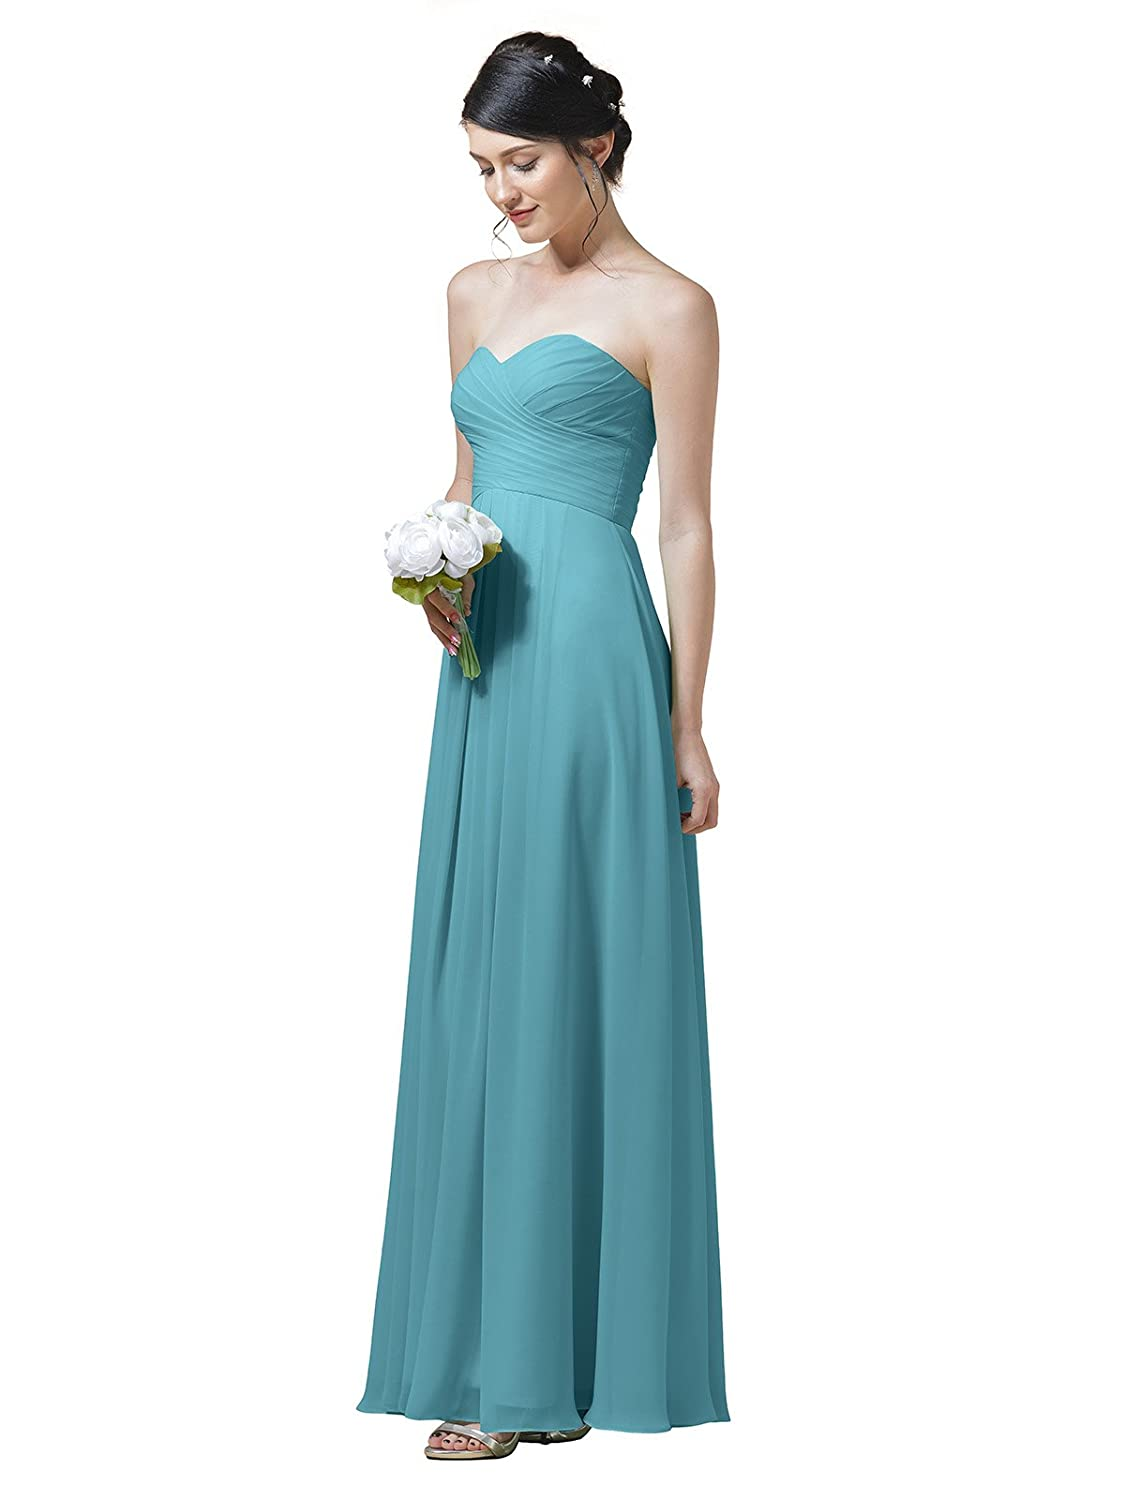 adcbe54b0a31 A-Line chiffon dress, sweetheart neckline, strapless, long simple gown,  suitable for Wedding Party Prom Homecoming or ...